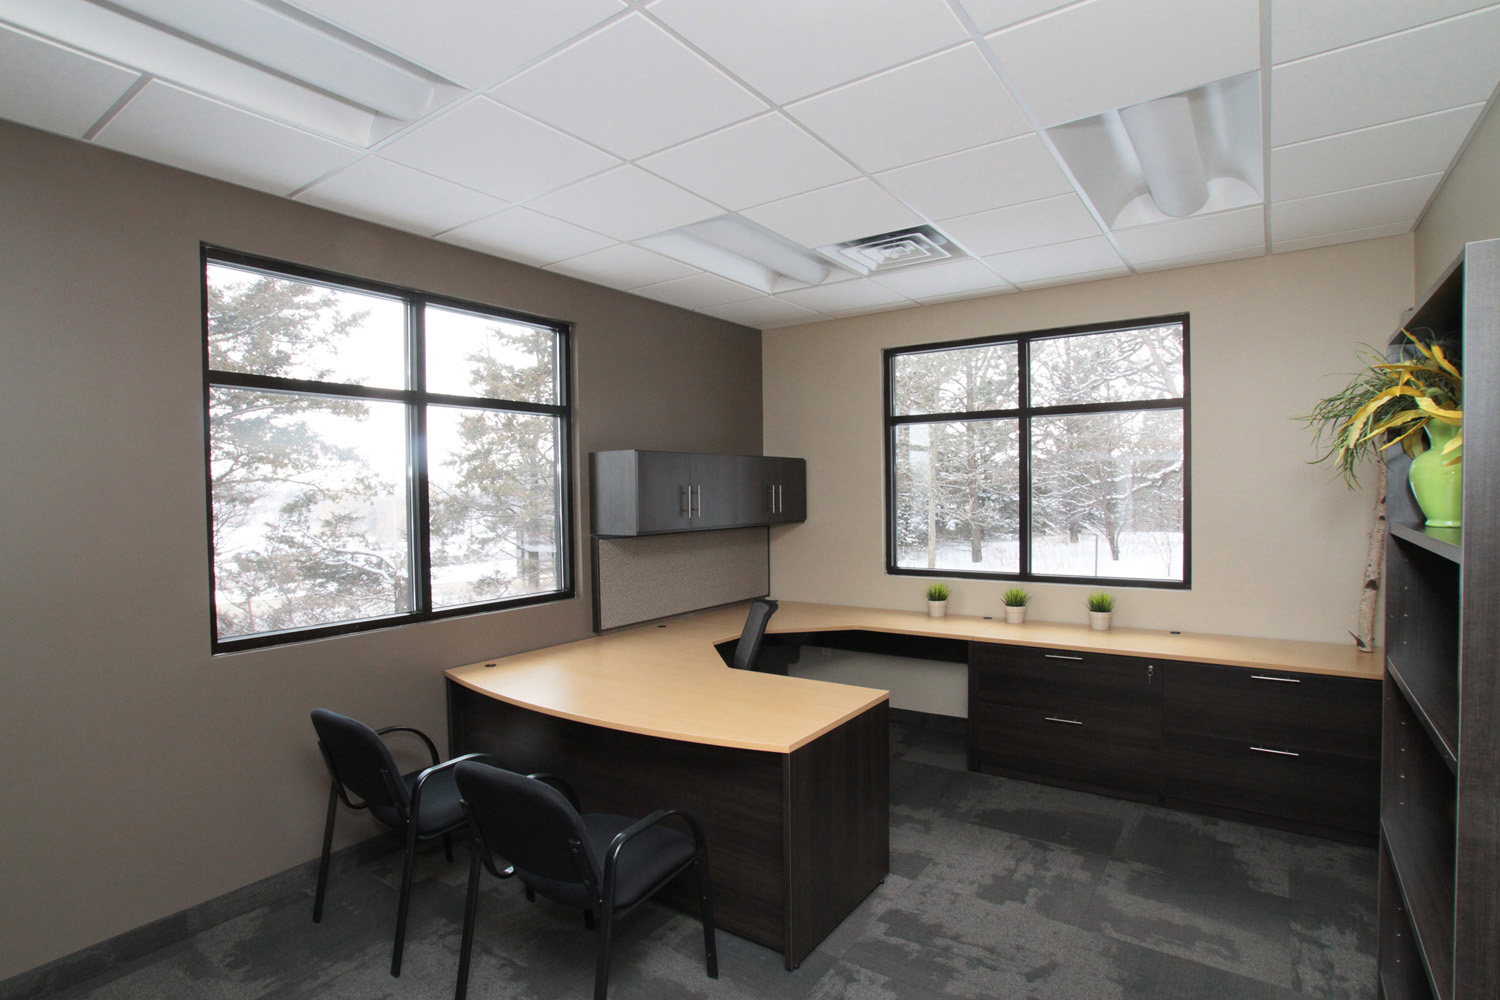 Office space design mankato new used office for Office space design